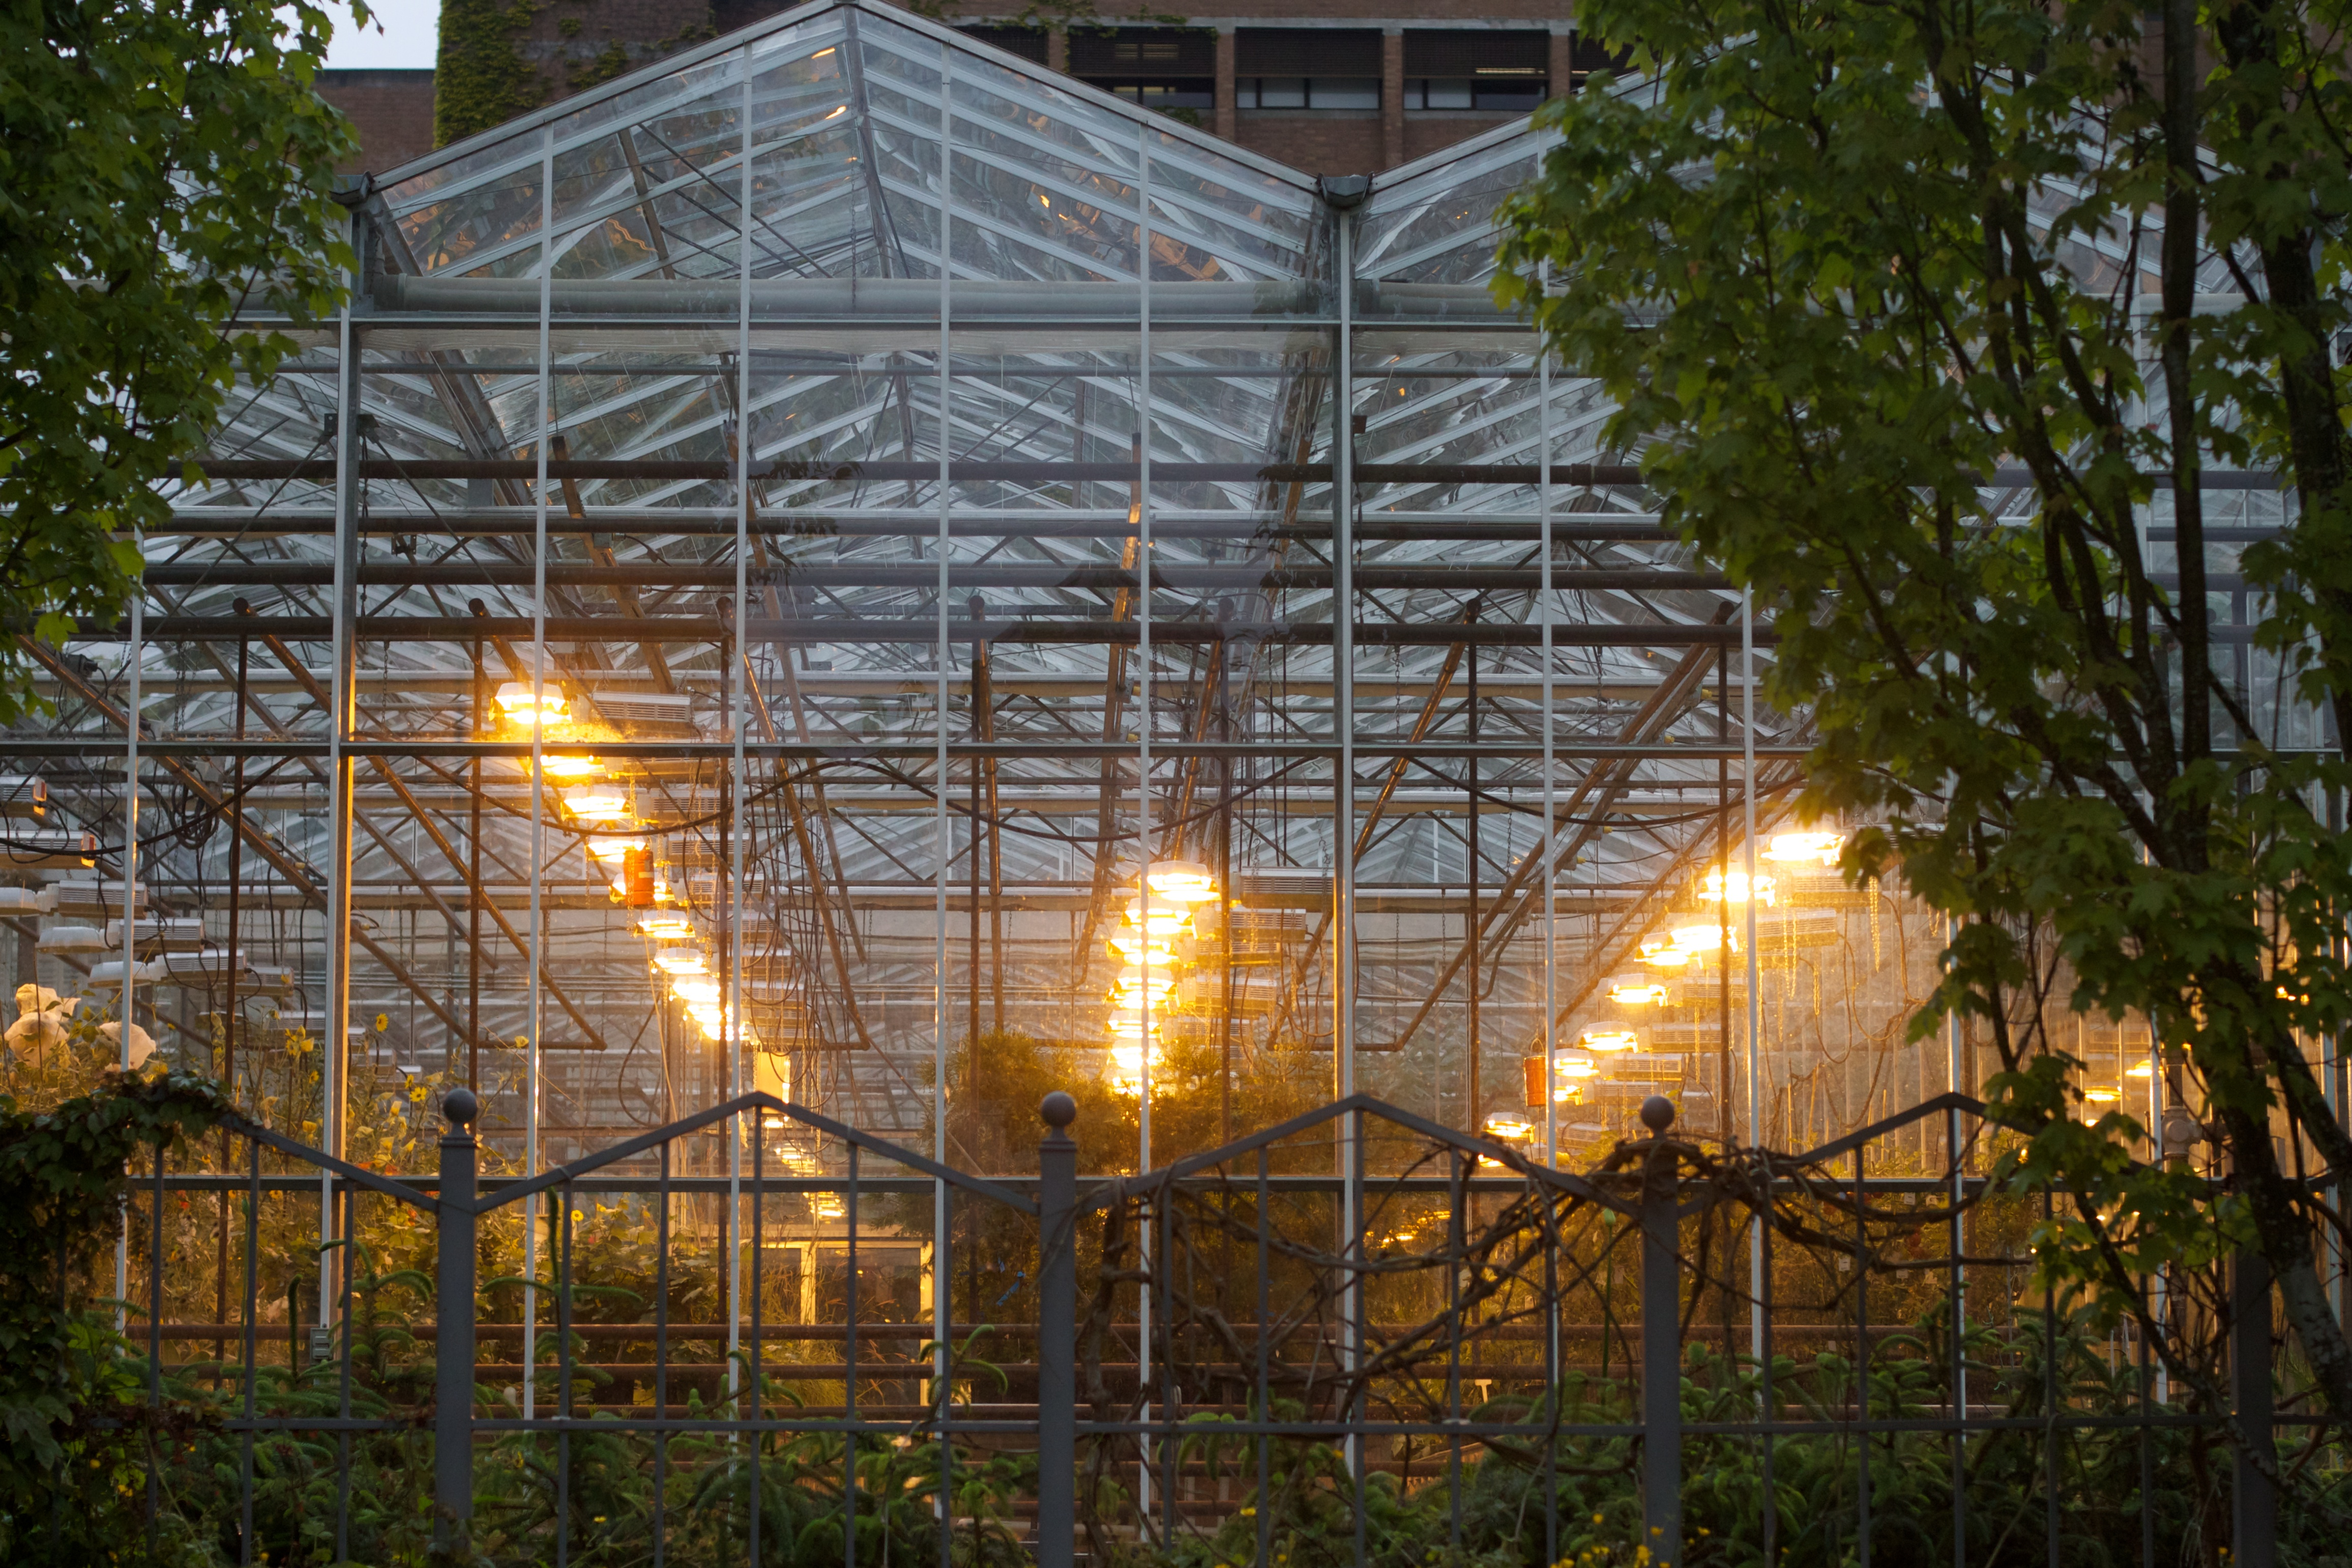 In cold months greenhouses need additional lighting to control growth cycles and supplement the sun.